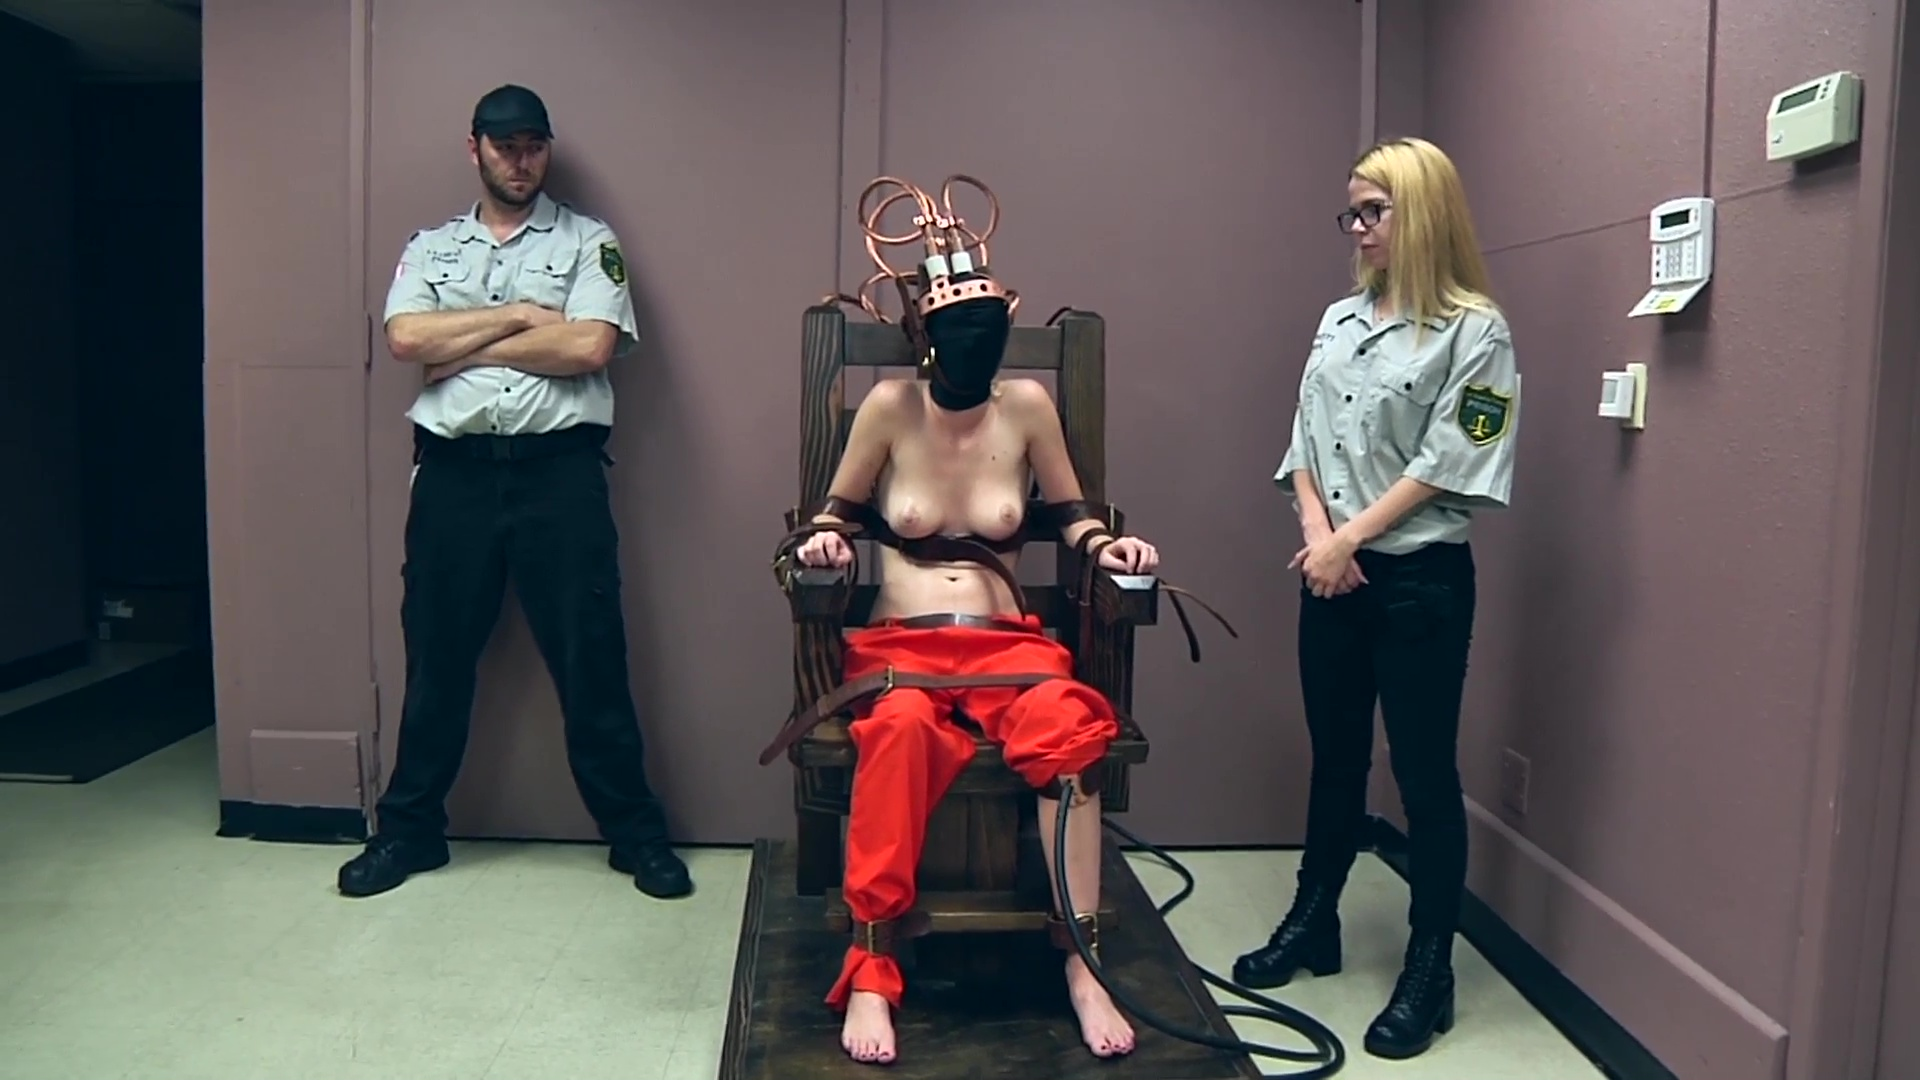 The Girl having sex with a electric chair